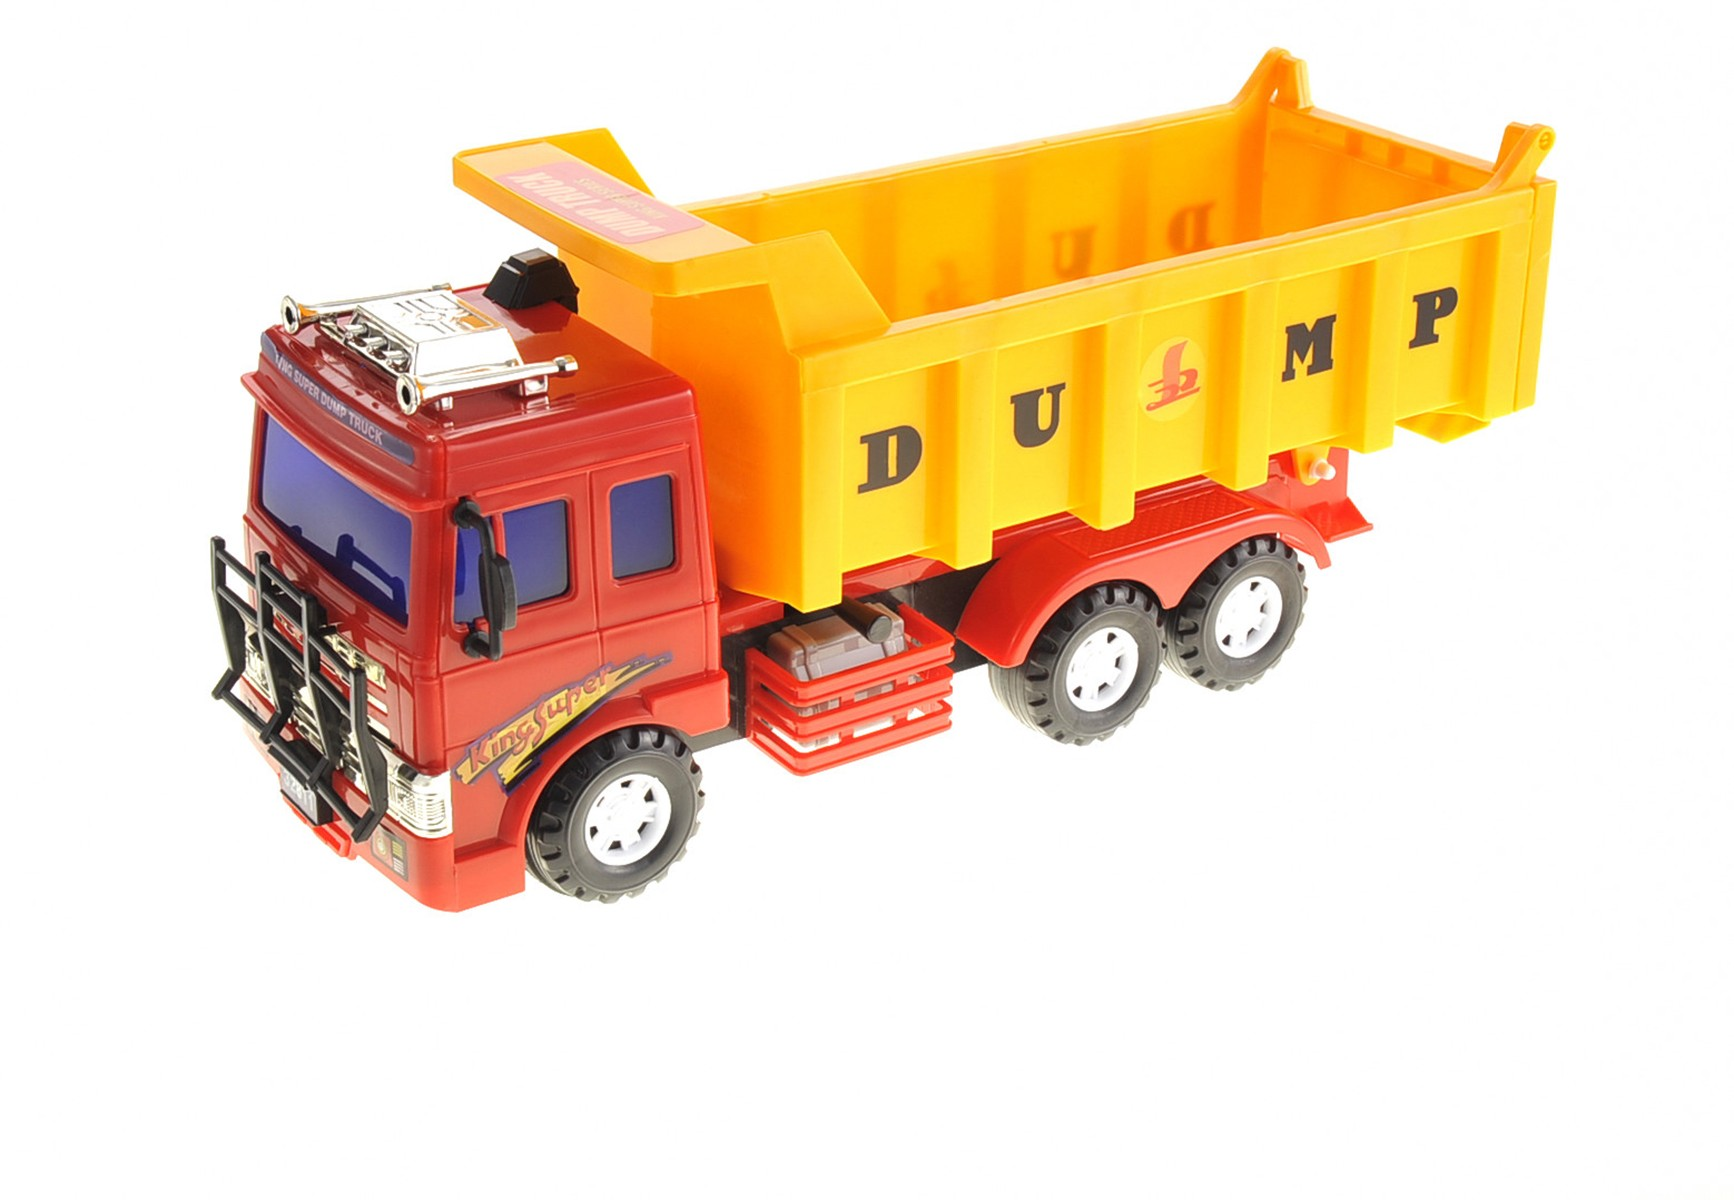 Big Dump Truck Toy for Kids with Friction Power (Heavy Duty)